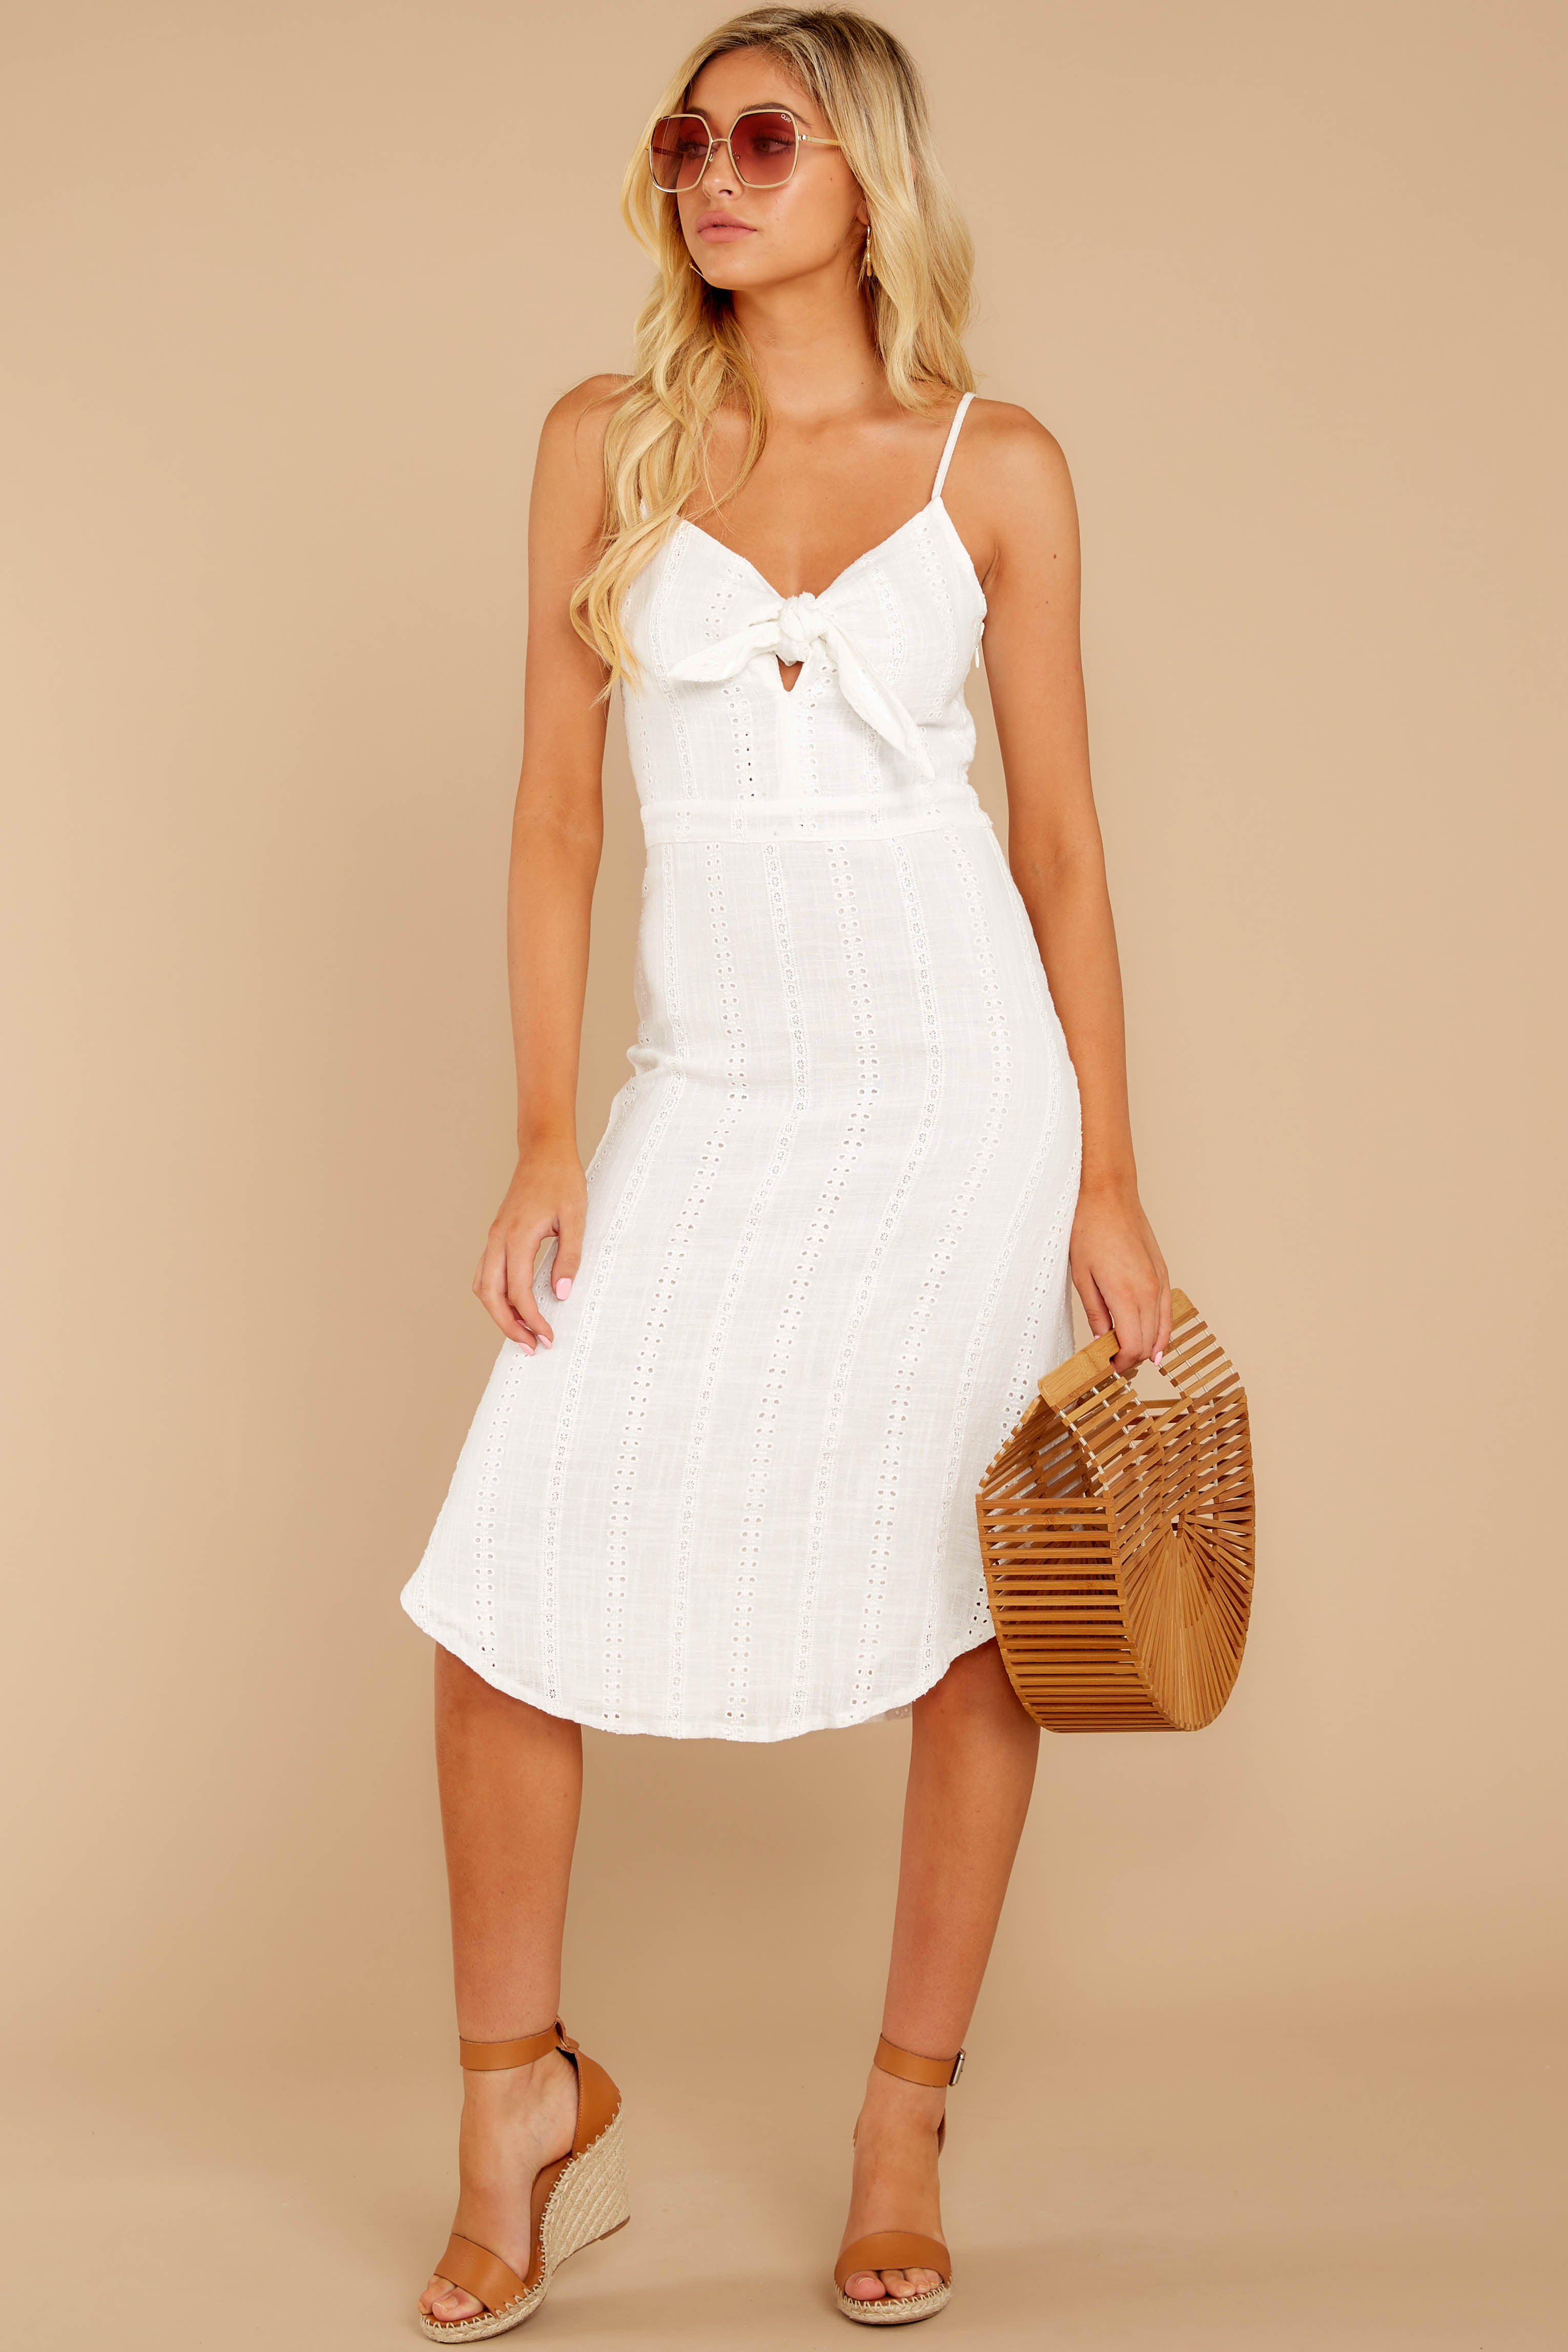 1 Impression Of Love White Eyelet Midi Dress at reddress.com